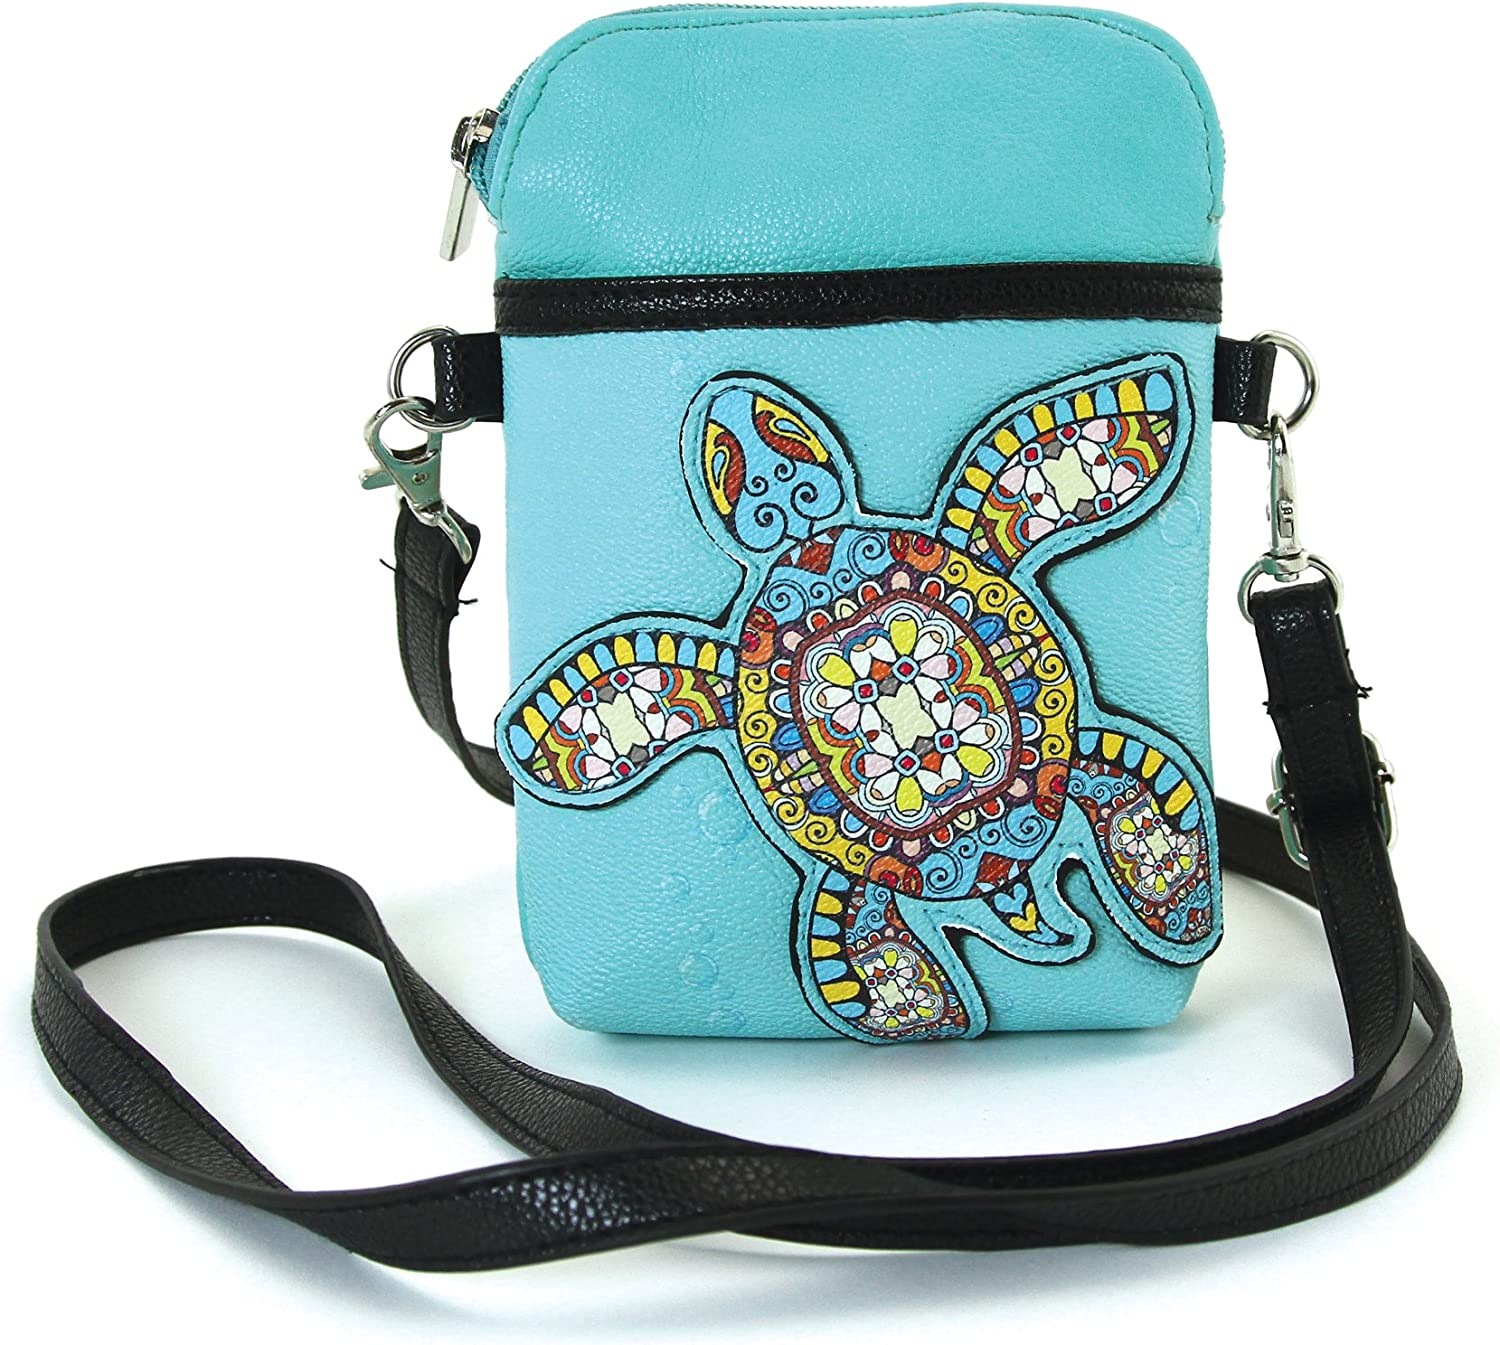 Coin Purse Tribal Sea Turtles Coin Pouch With Zipper,Make Up Bag,Wallet Bag Change Pouch Key Holder